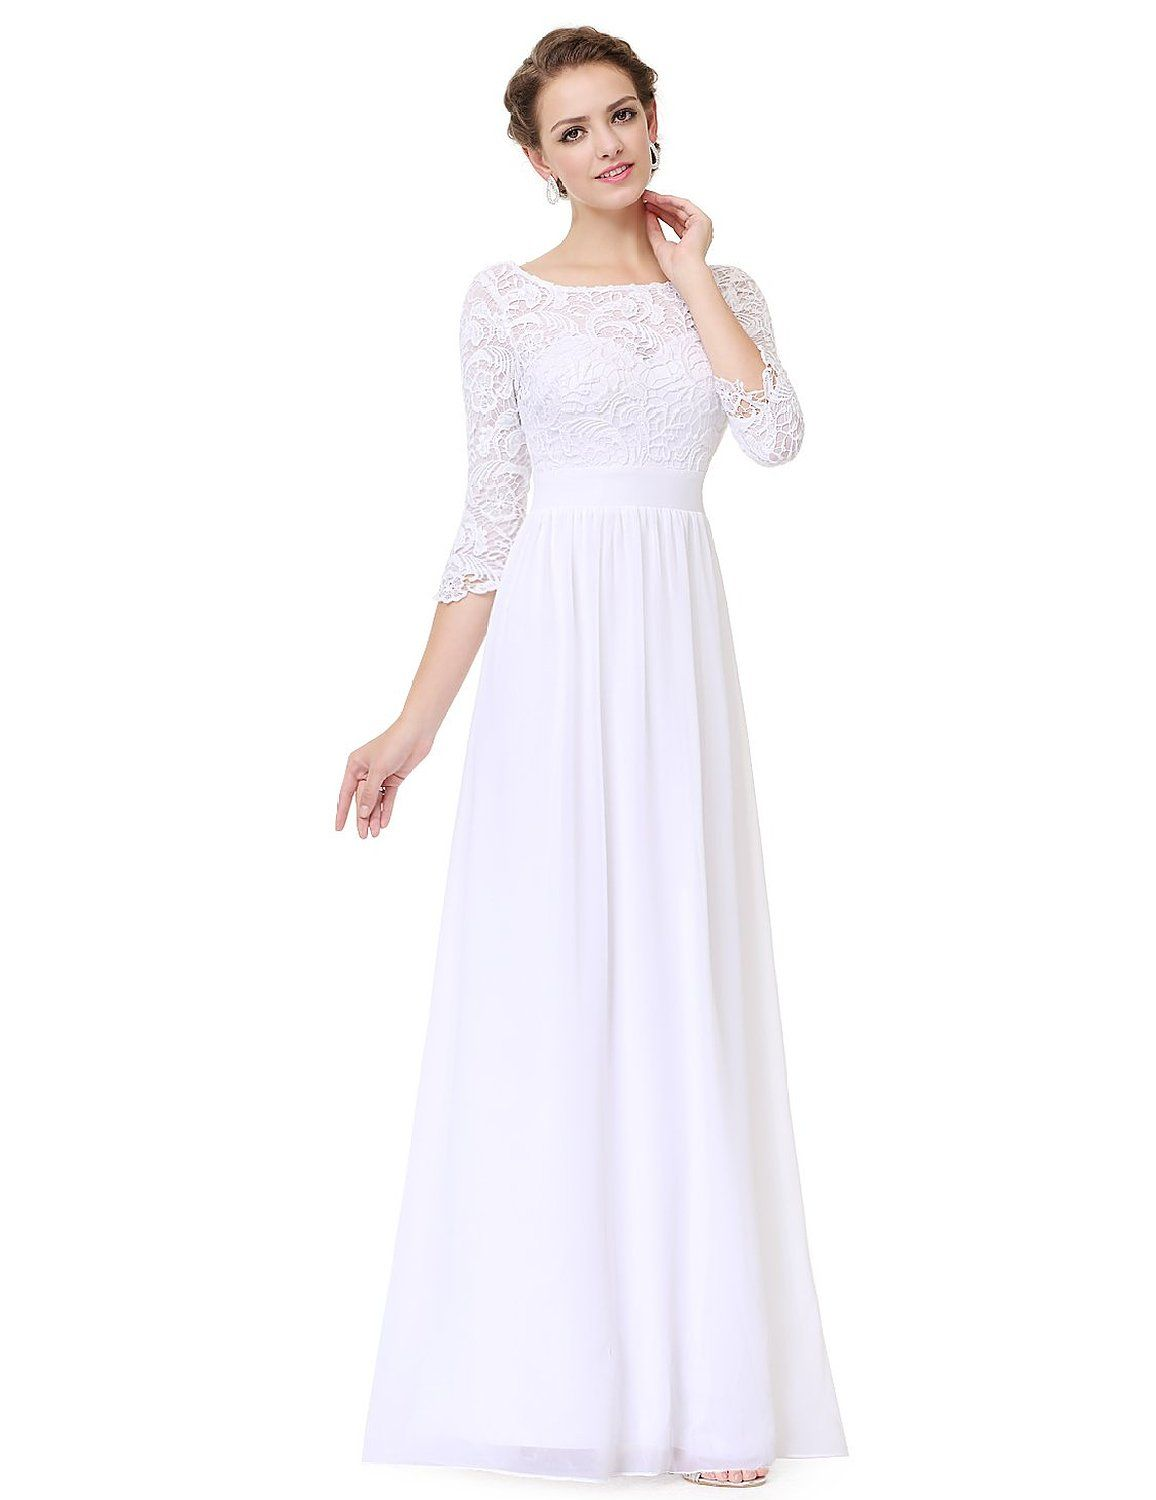 320a3f19 Ever Pretty Women's Lace Long Sleeve Floor Length Evening Dress 08412:  Amazon Fashion